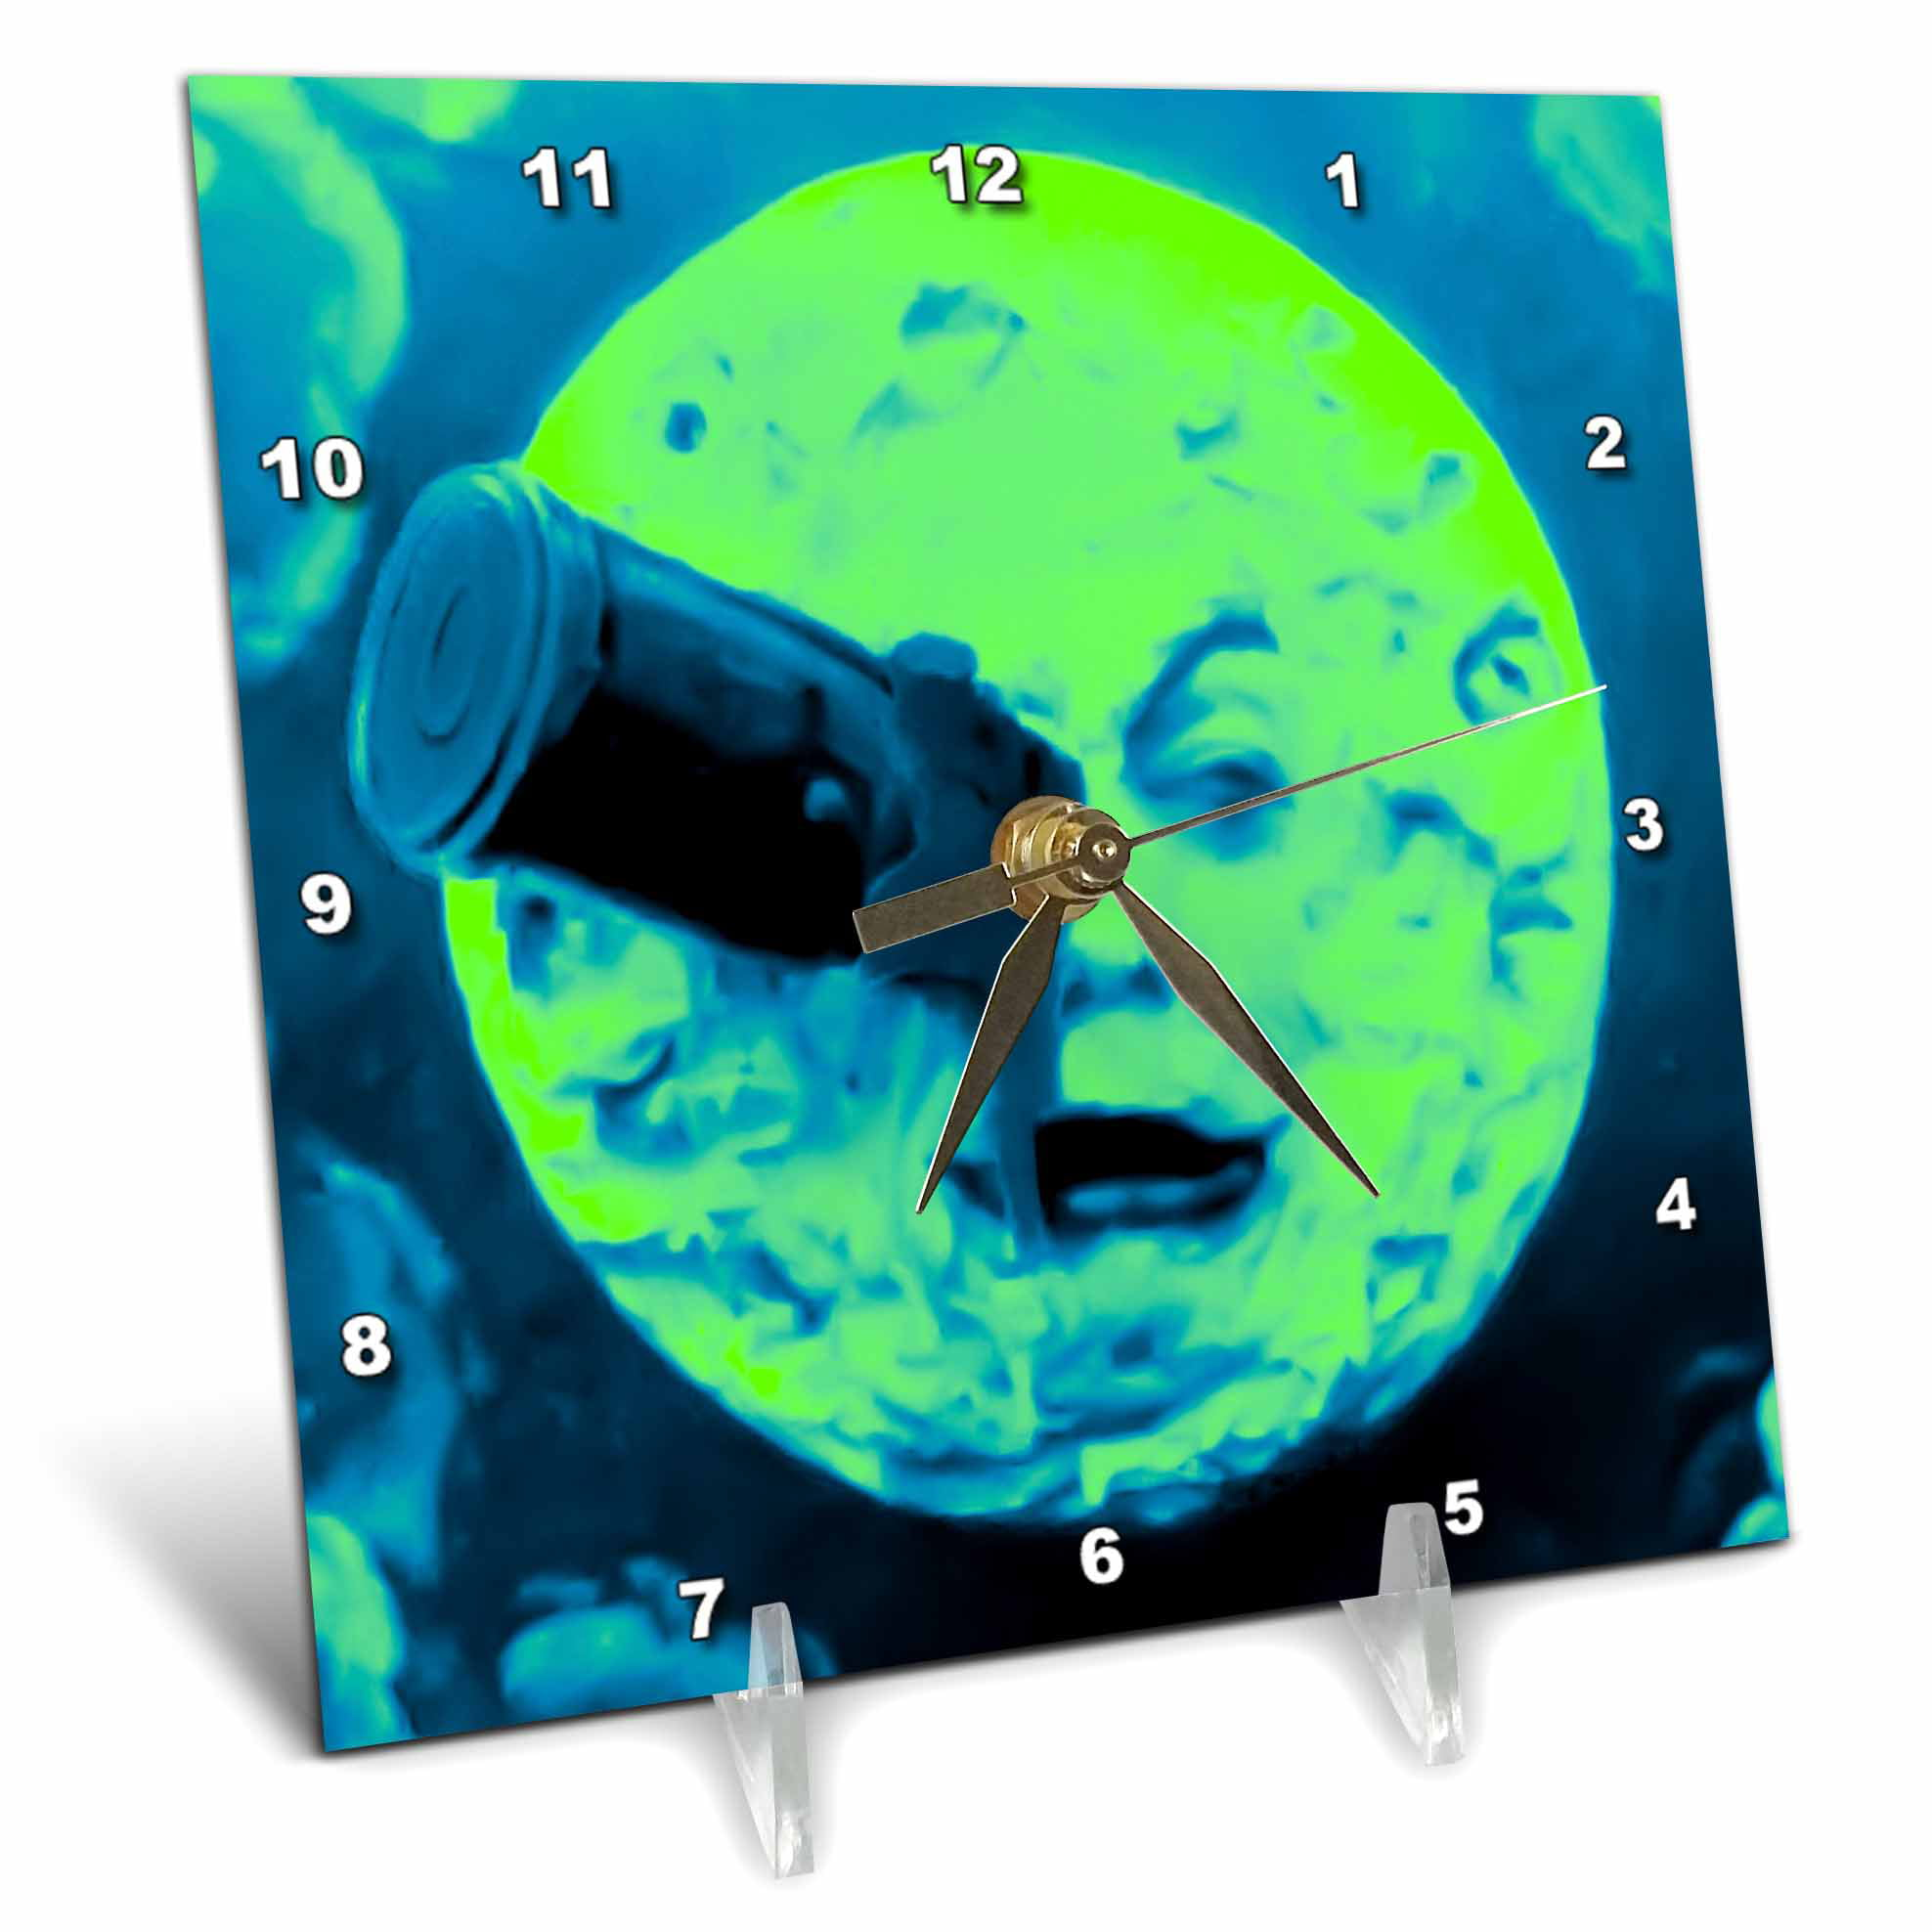 3dRose A Trip to the Moon (Neon Blue Green Fuzzed), Desk Clock, 6 by 6-inch by 3dRose